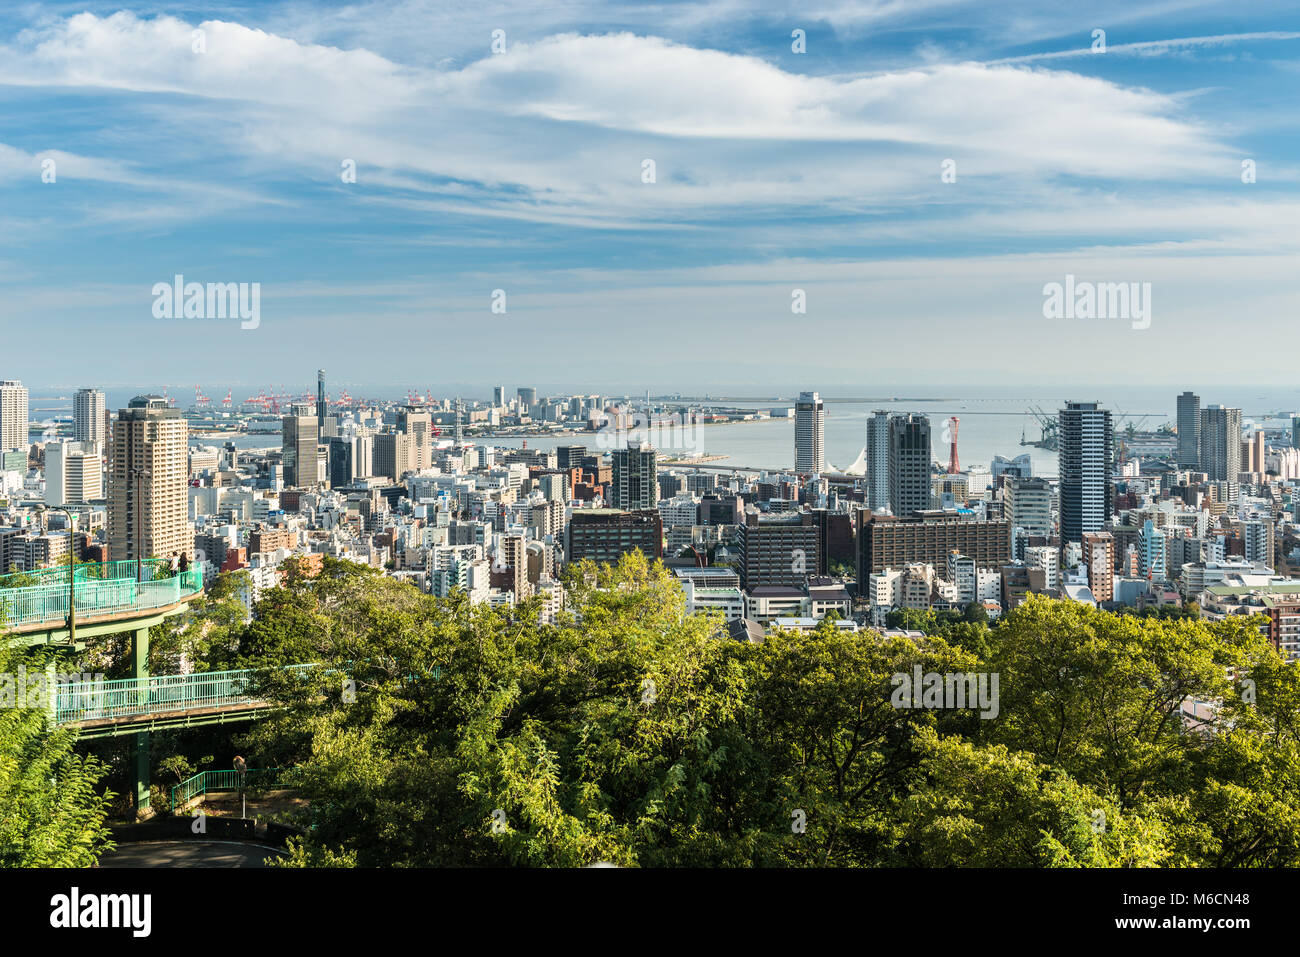 View from Venus Bridge, Kobe  overlooking Kobe City and the Port Island - Stock Image